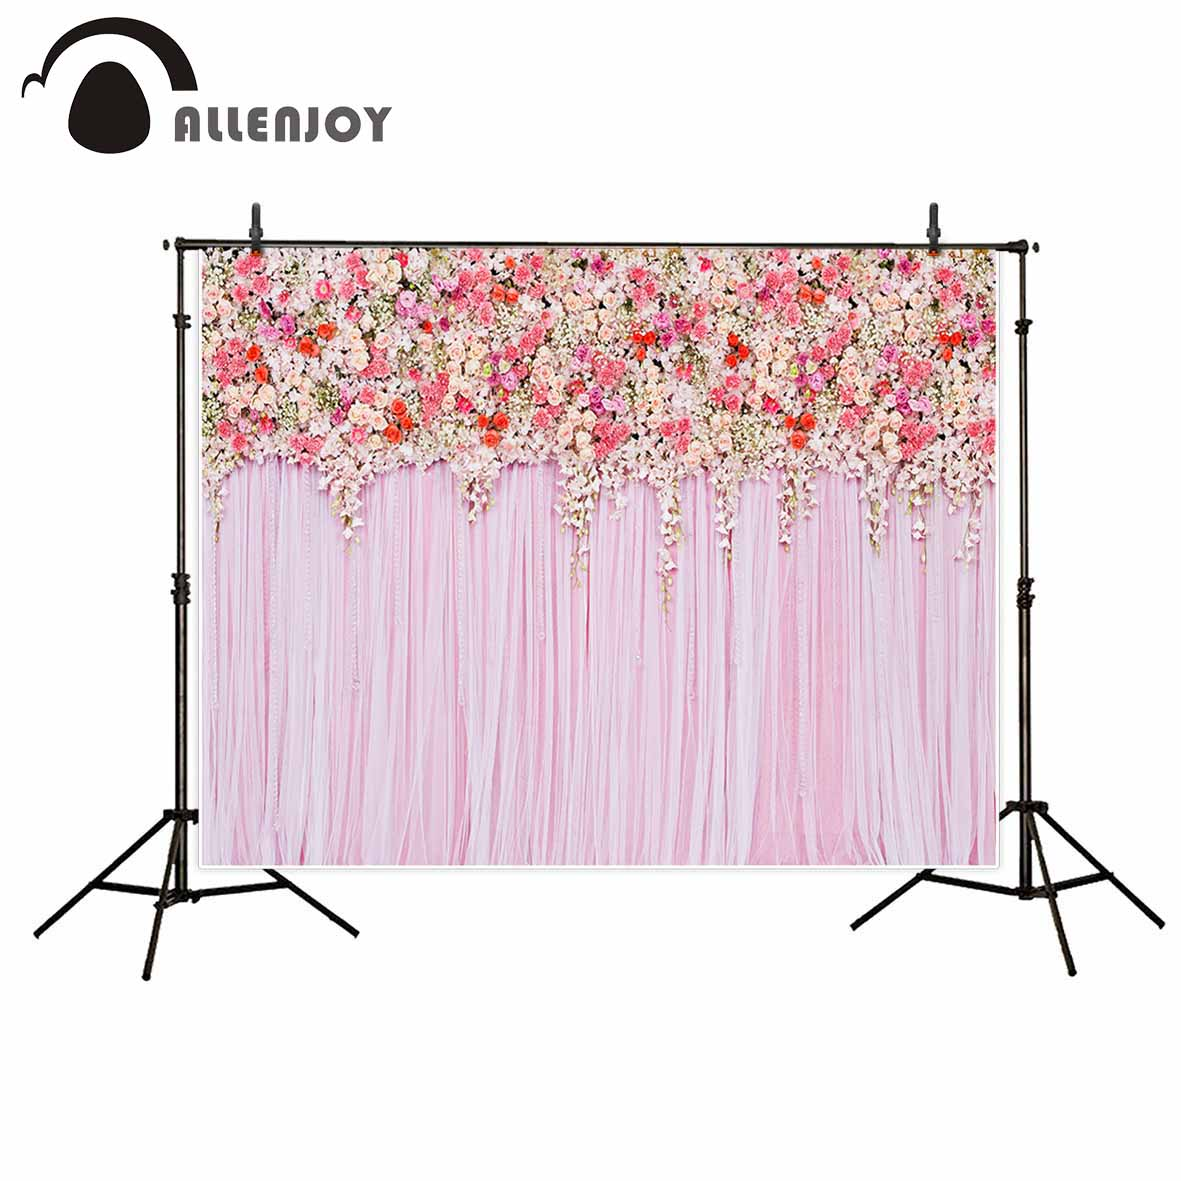 Allenjoy photographic background Pink cute flowers romantic wedding new backdrop photocall photo customize camera fotografica